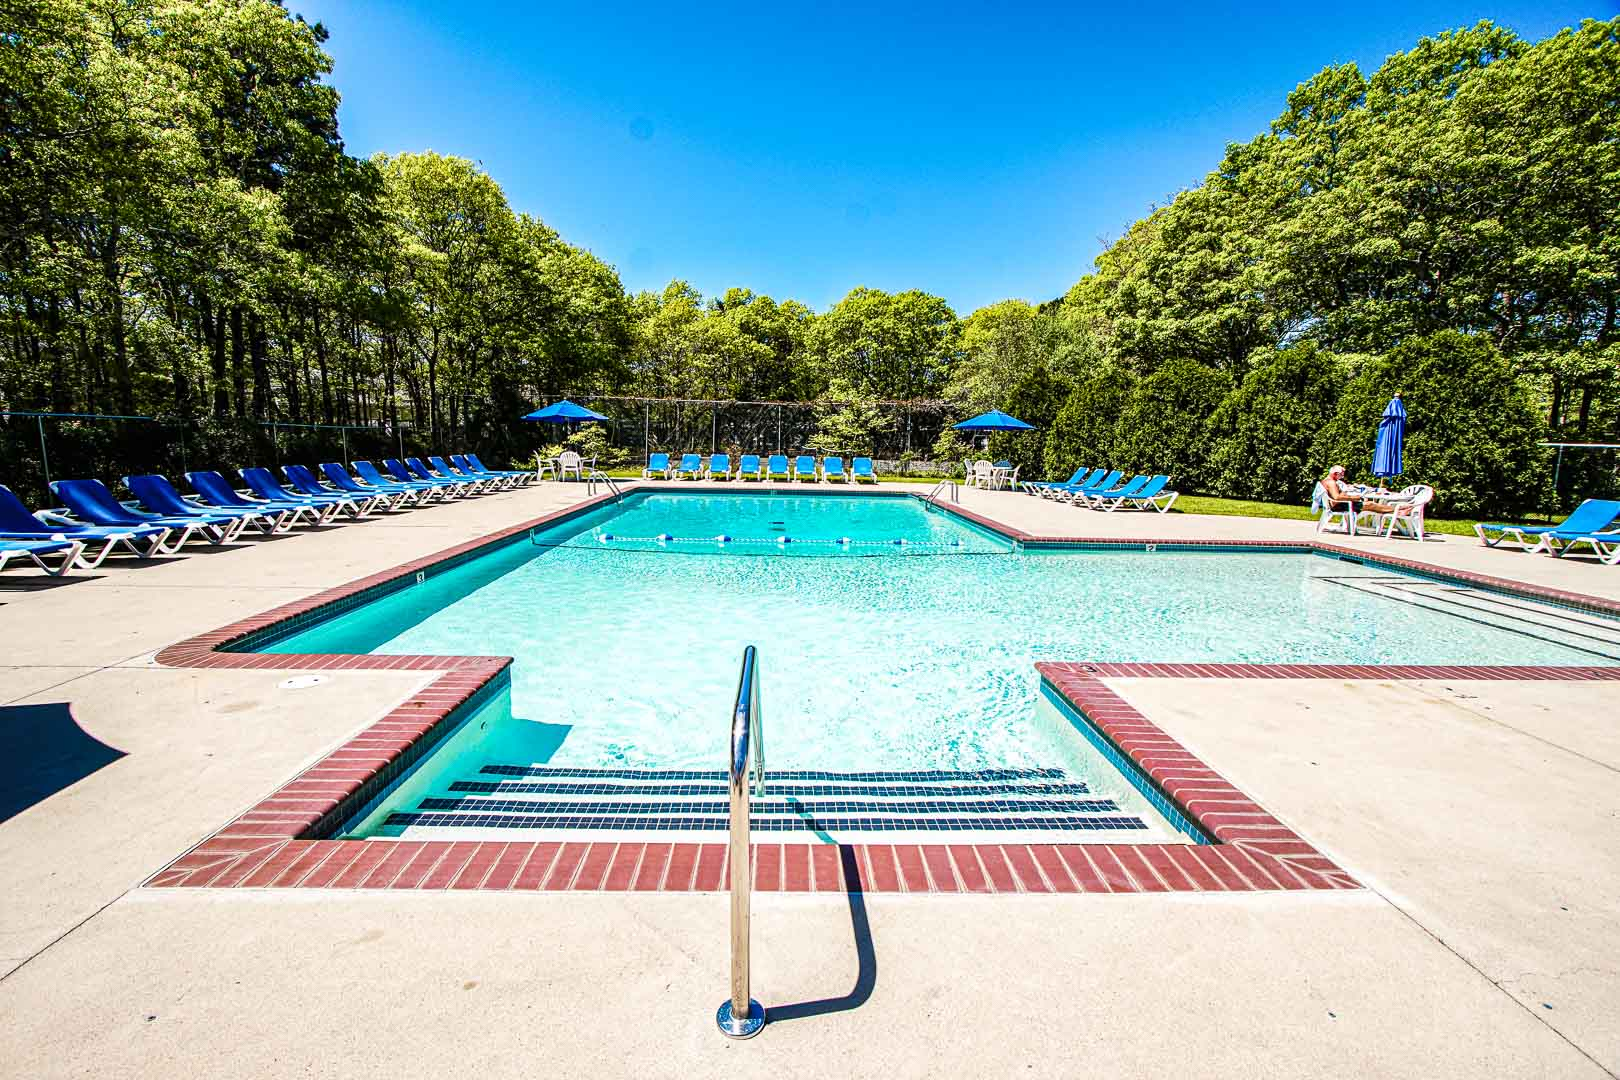 An expansive view of the outdoor swimming pool at VRI's Sea Mist Resort in Massachusetts.